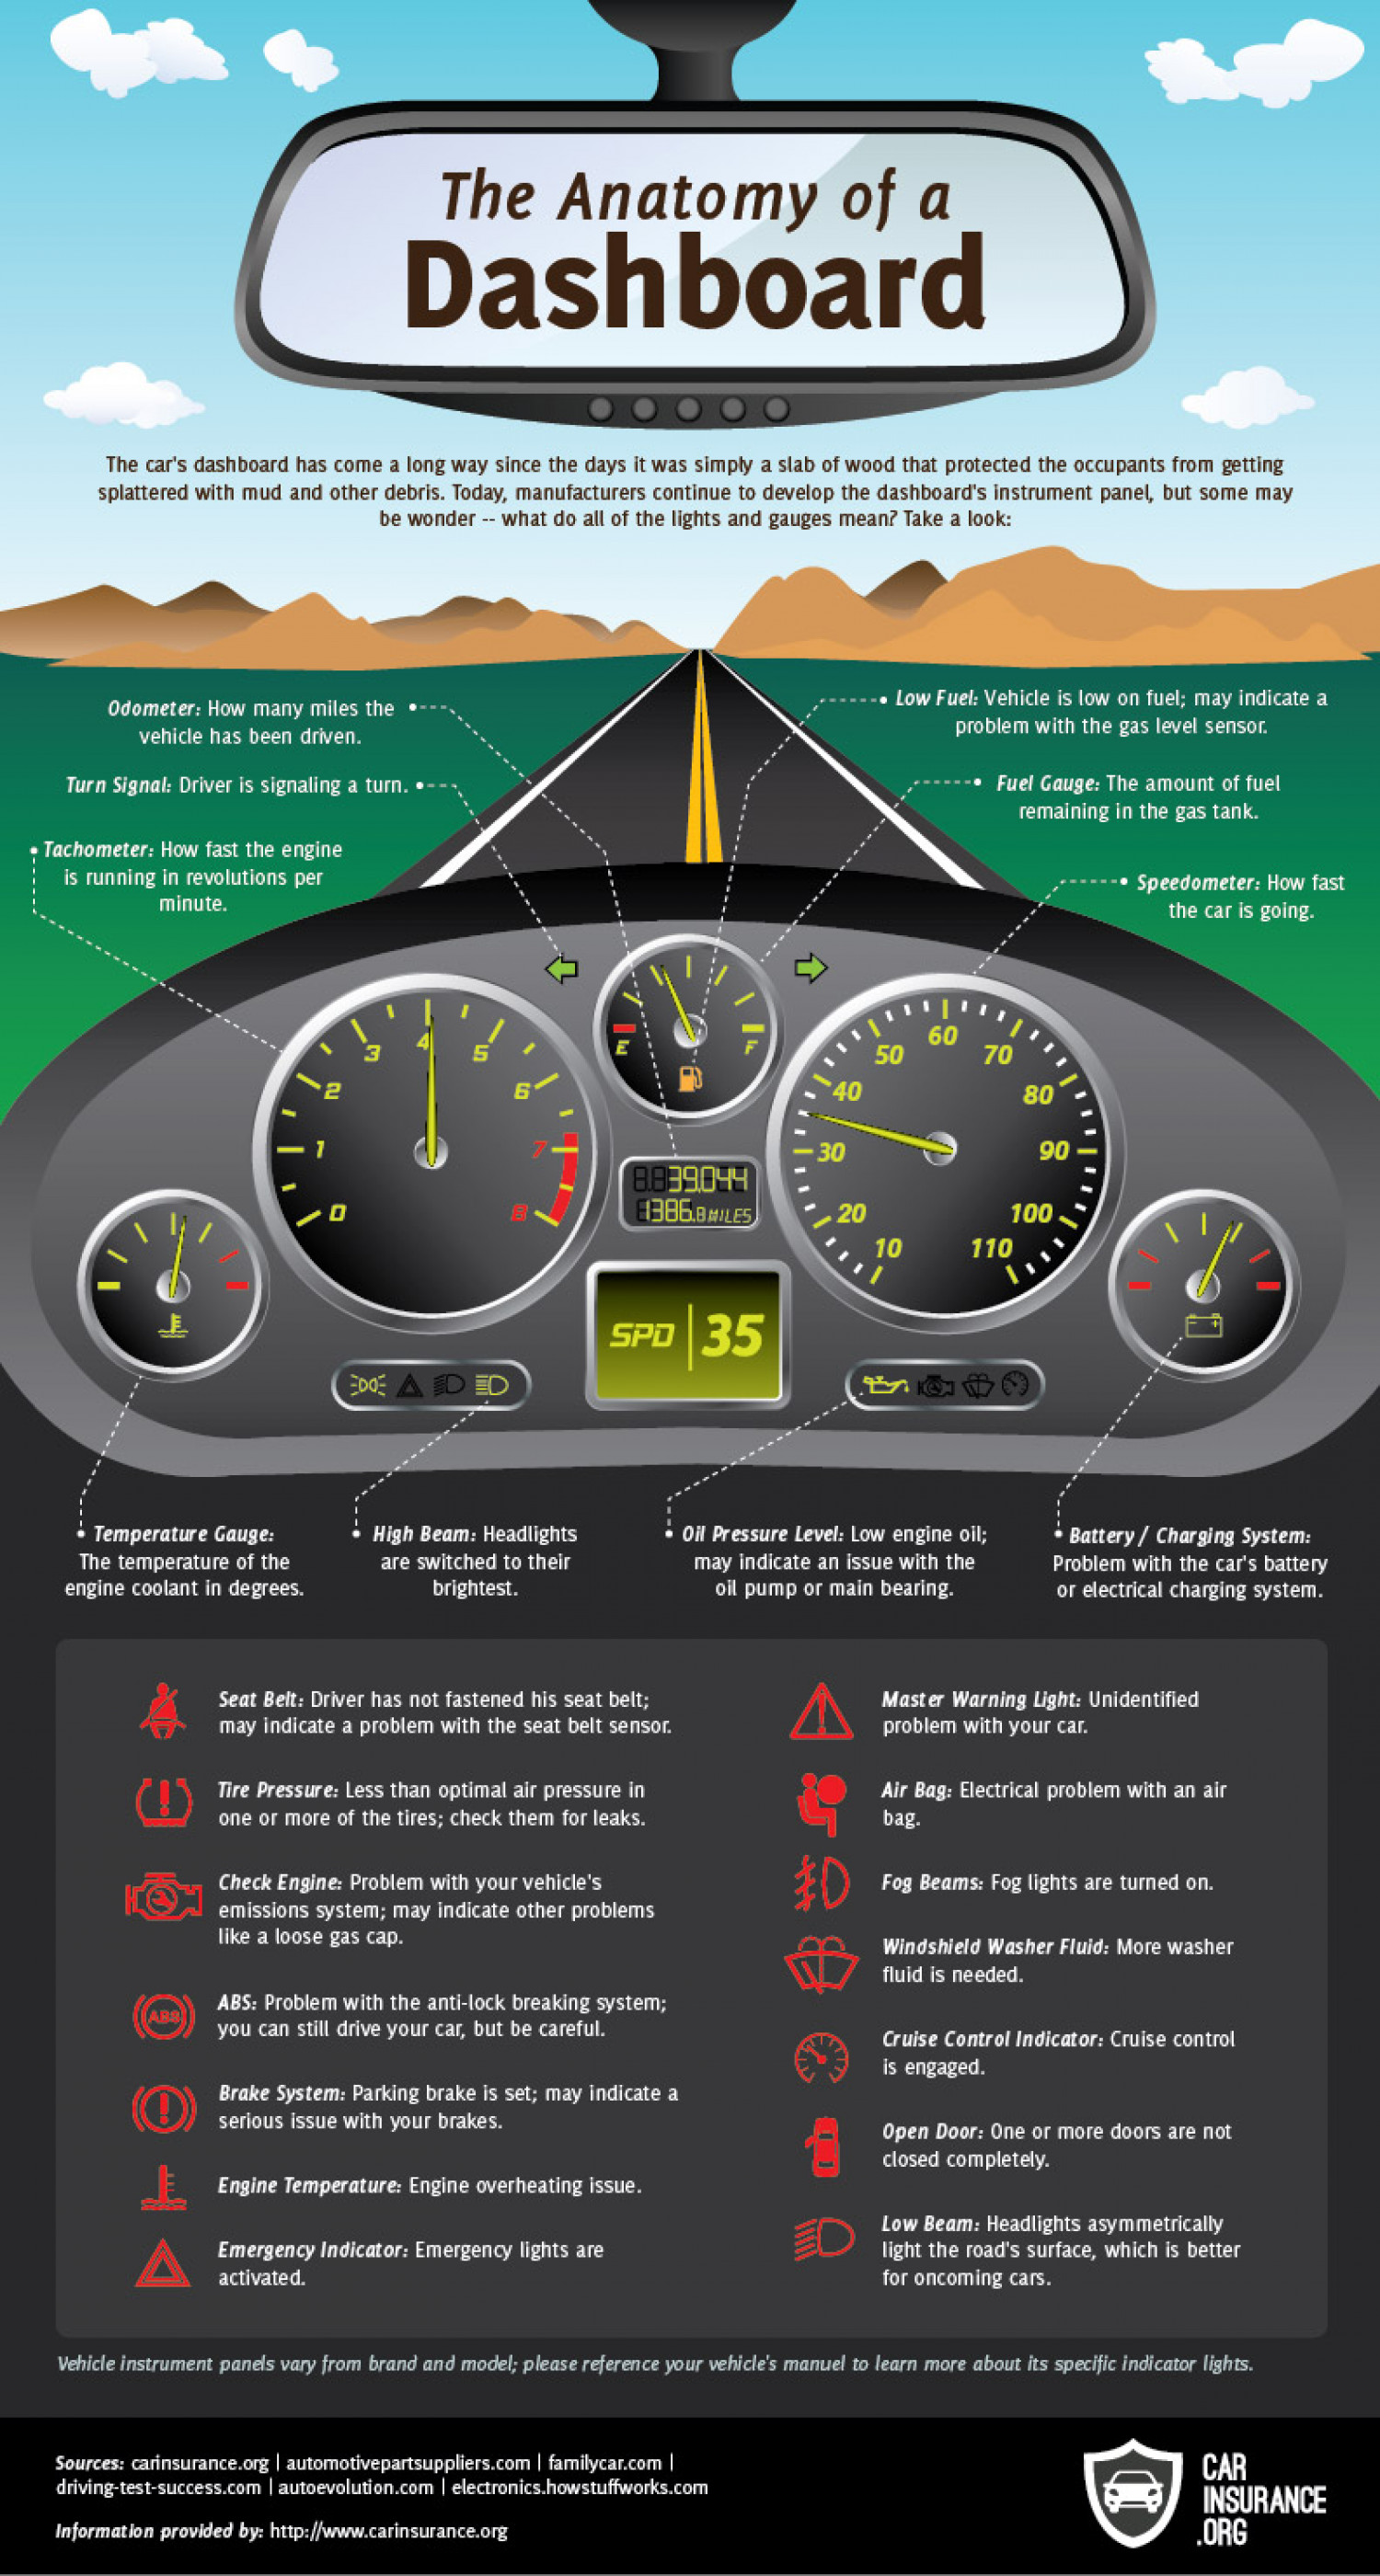 Anatomy of a Dashboard Infographic